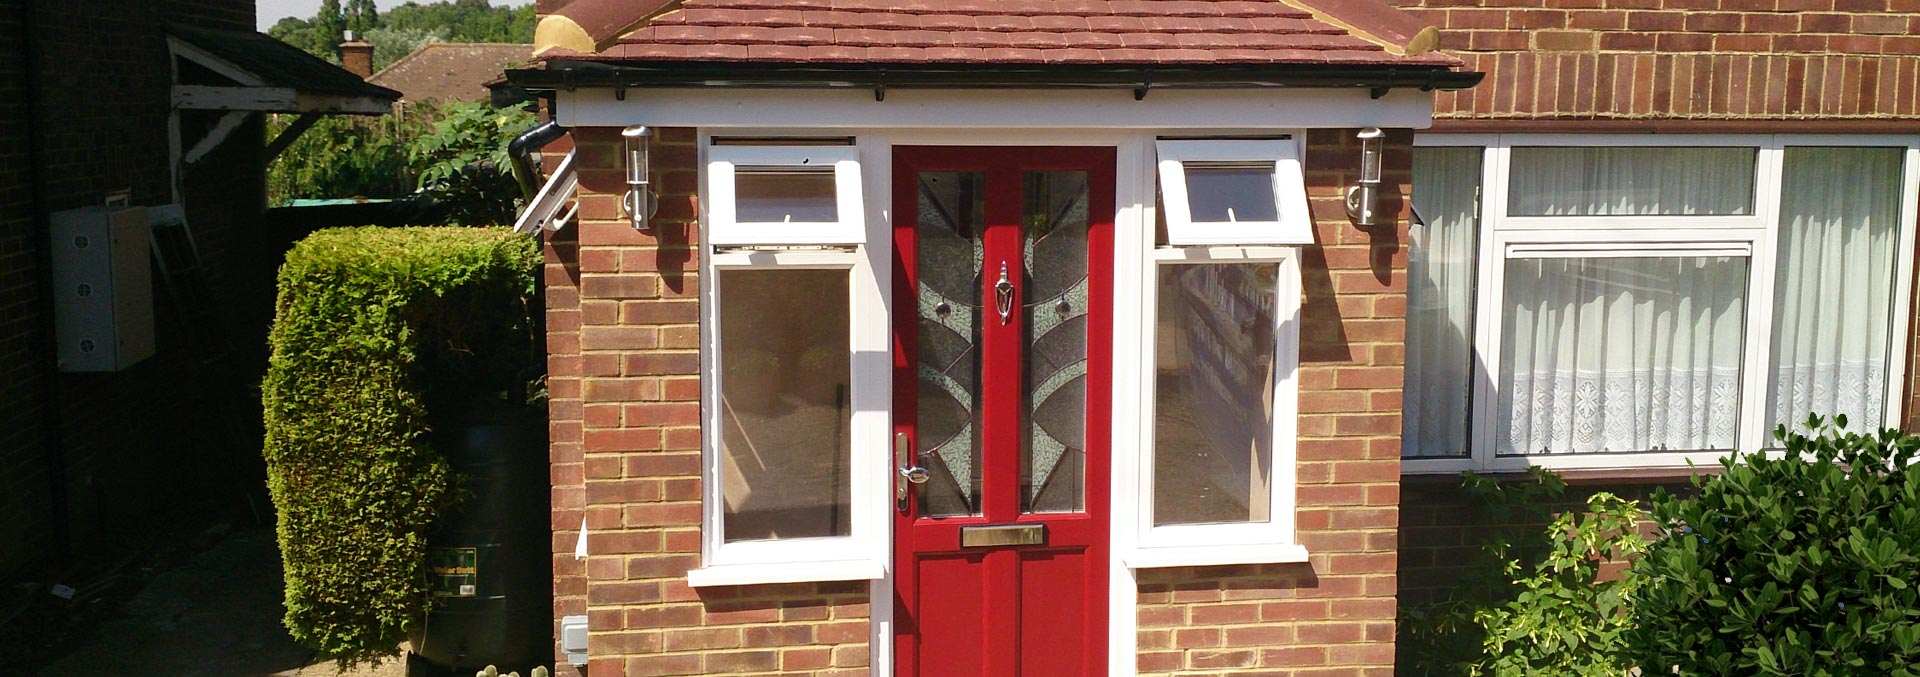 Brick porch installation with red door and casement windows